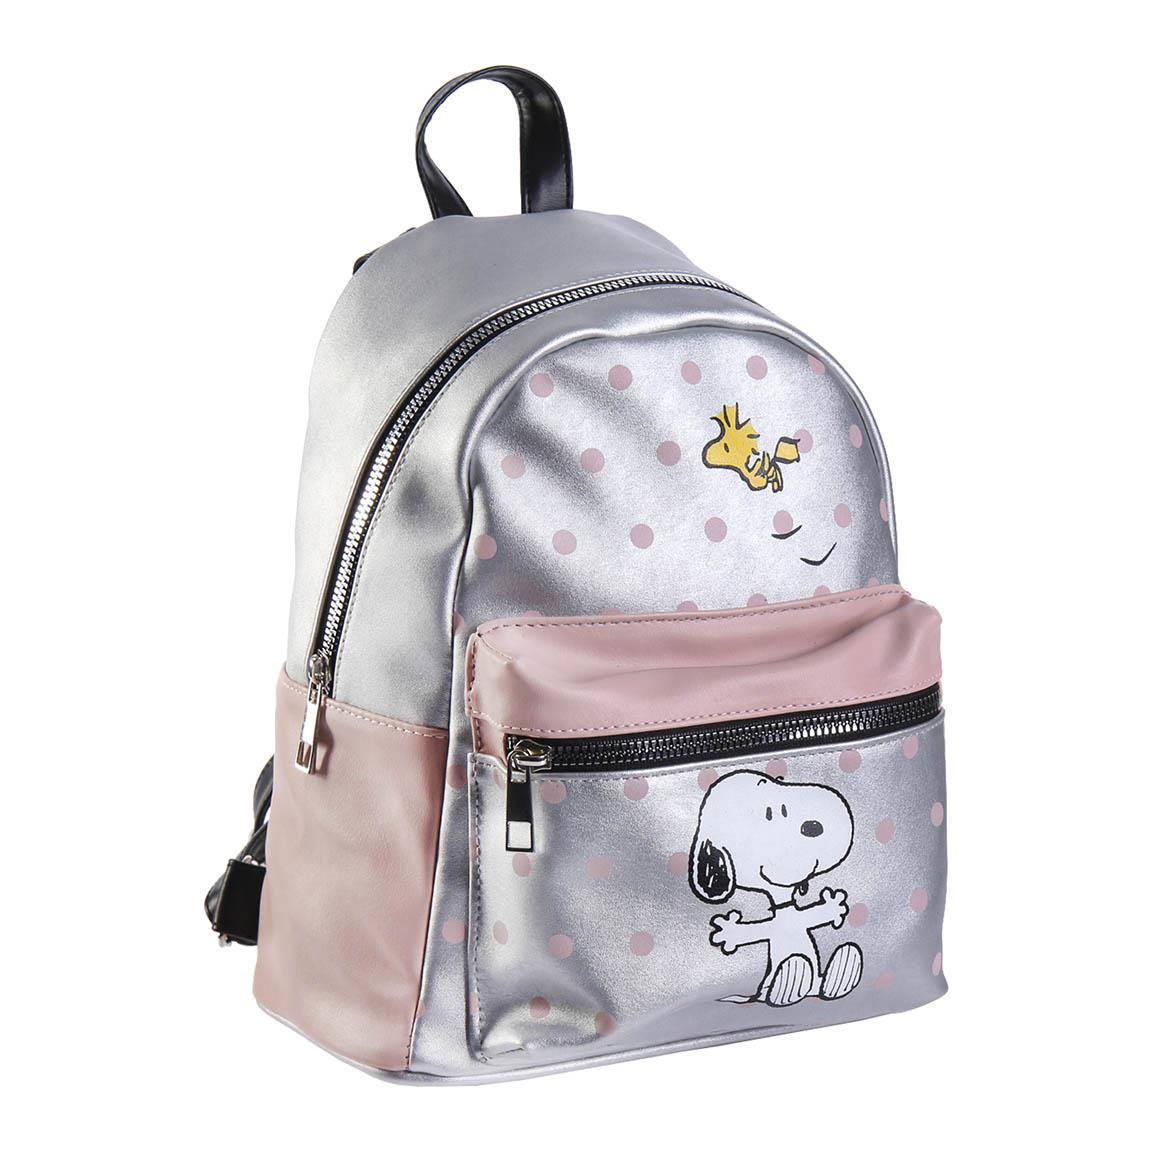 Peanuts Faux Leather Backpack Snoopy & Woodstock